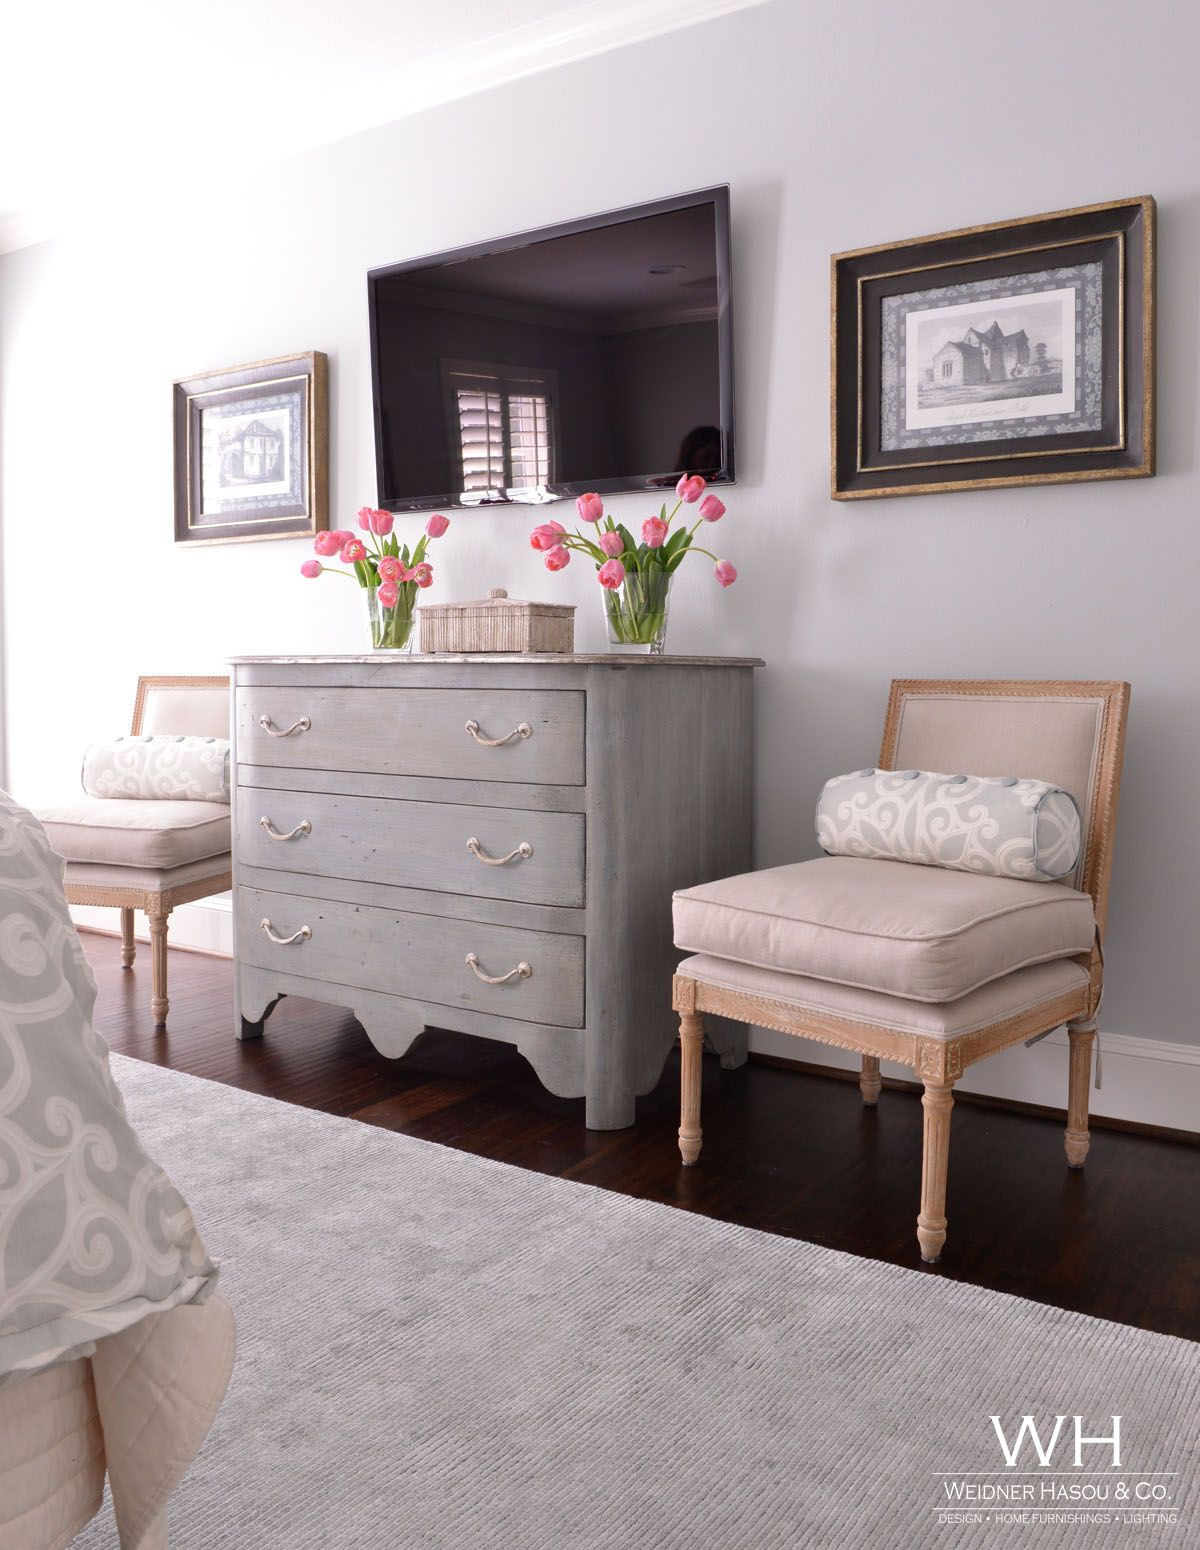 Memorial Transitional   Gray Cabinet, Old Fashioned Chairs And Pillows,  Framed Photos